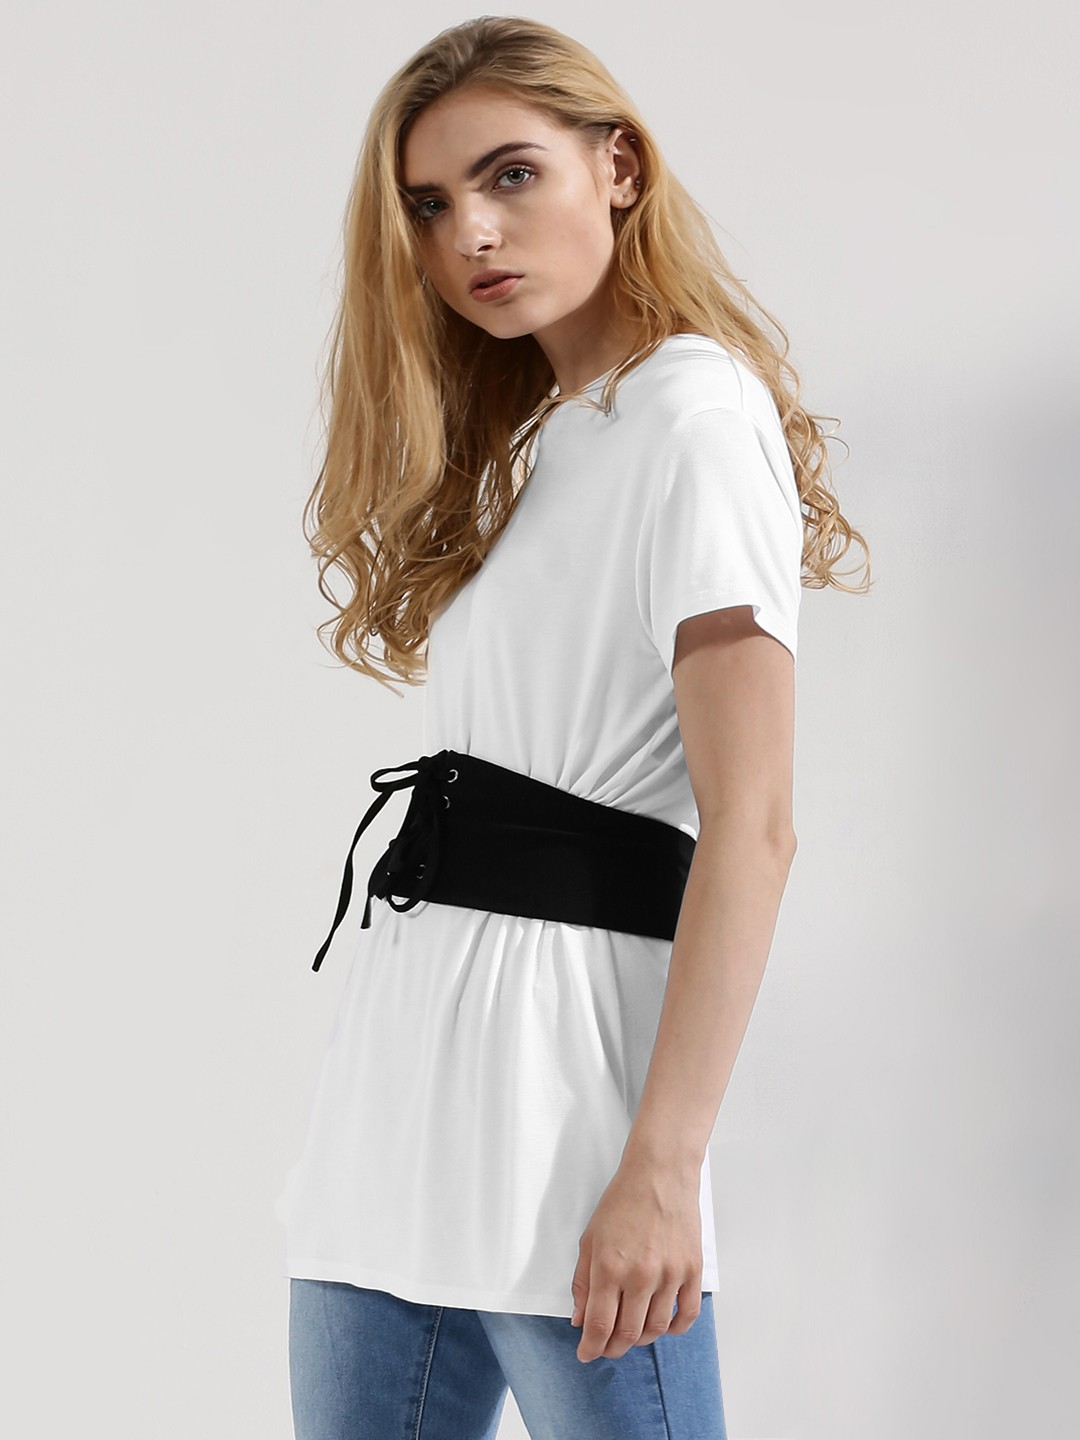 Femella White Jersey T-Shirt With Corset Belt 1